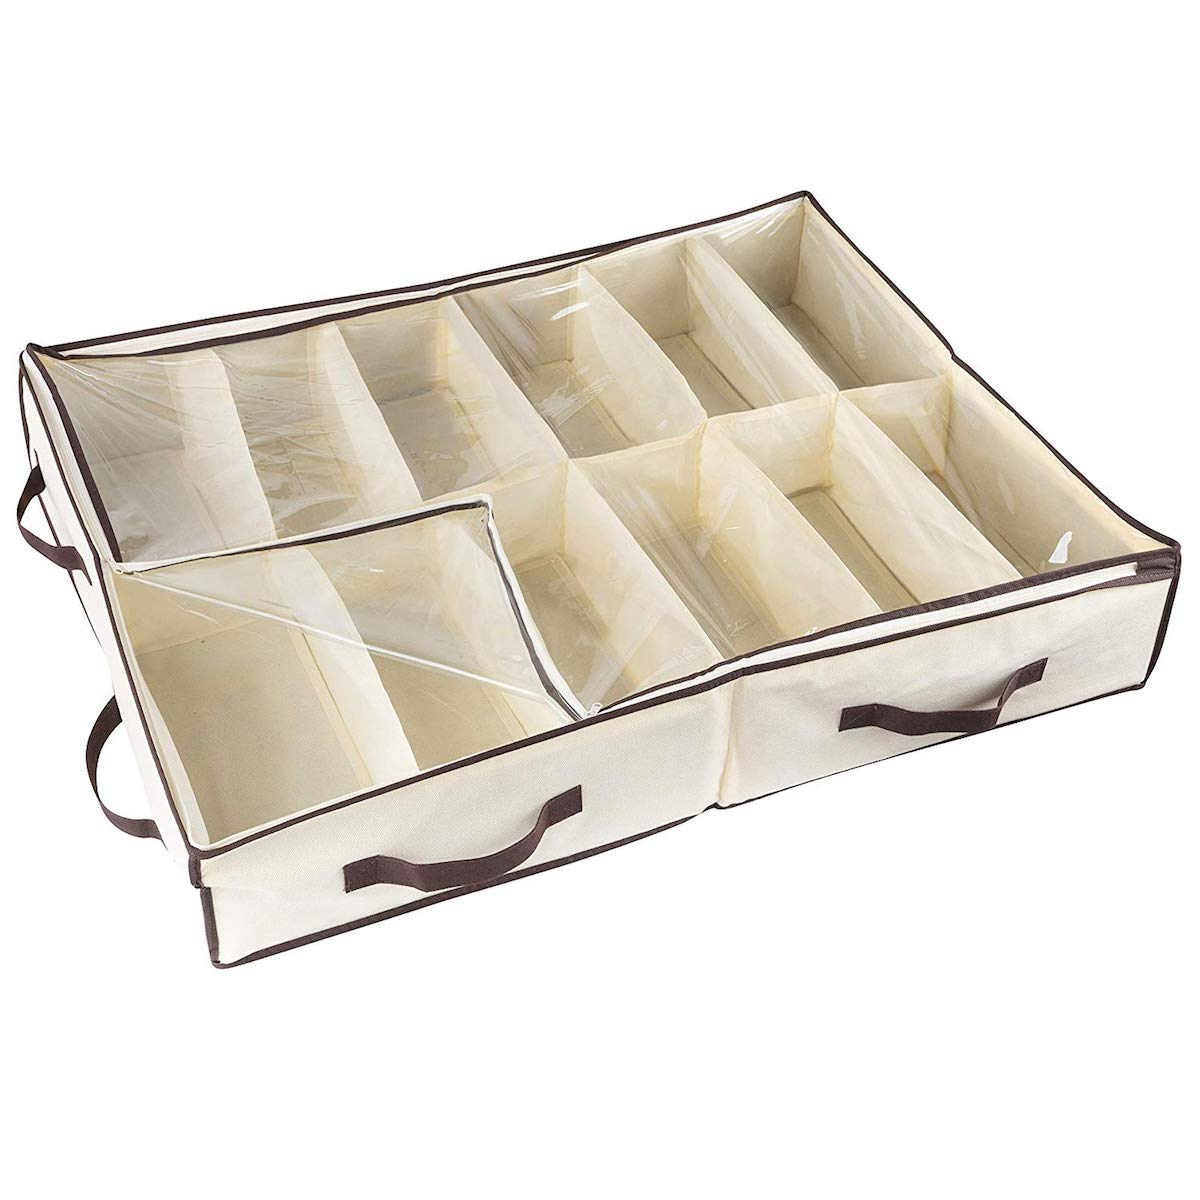 Underbed shoe storage bin with clear zippered cover